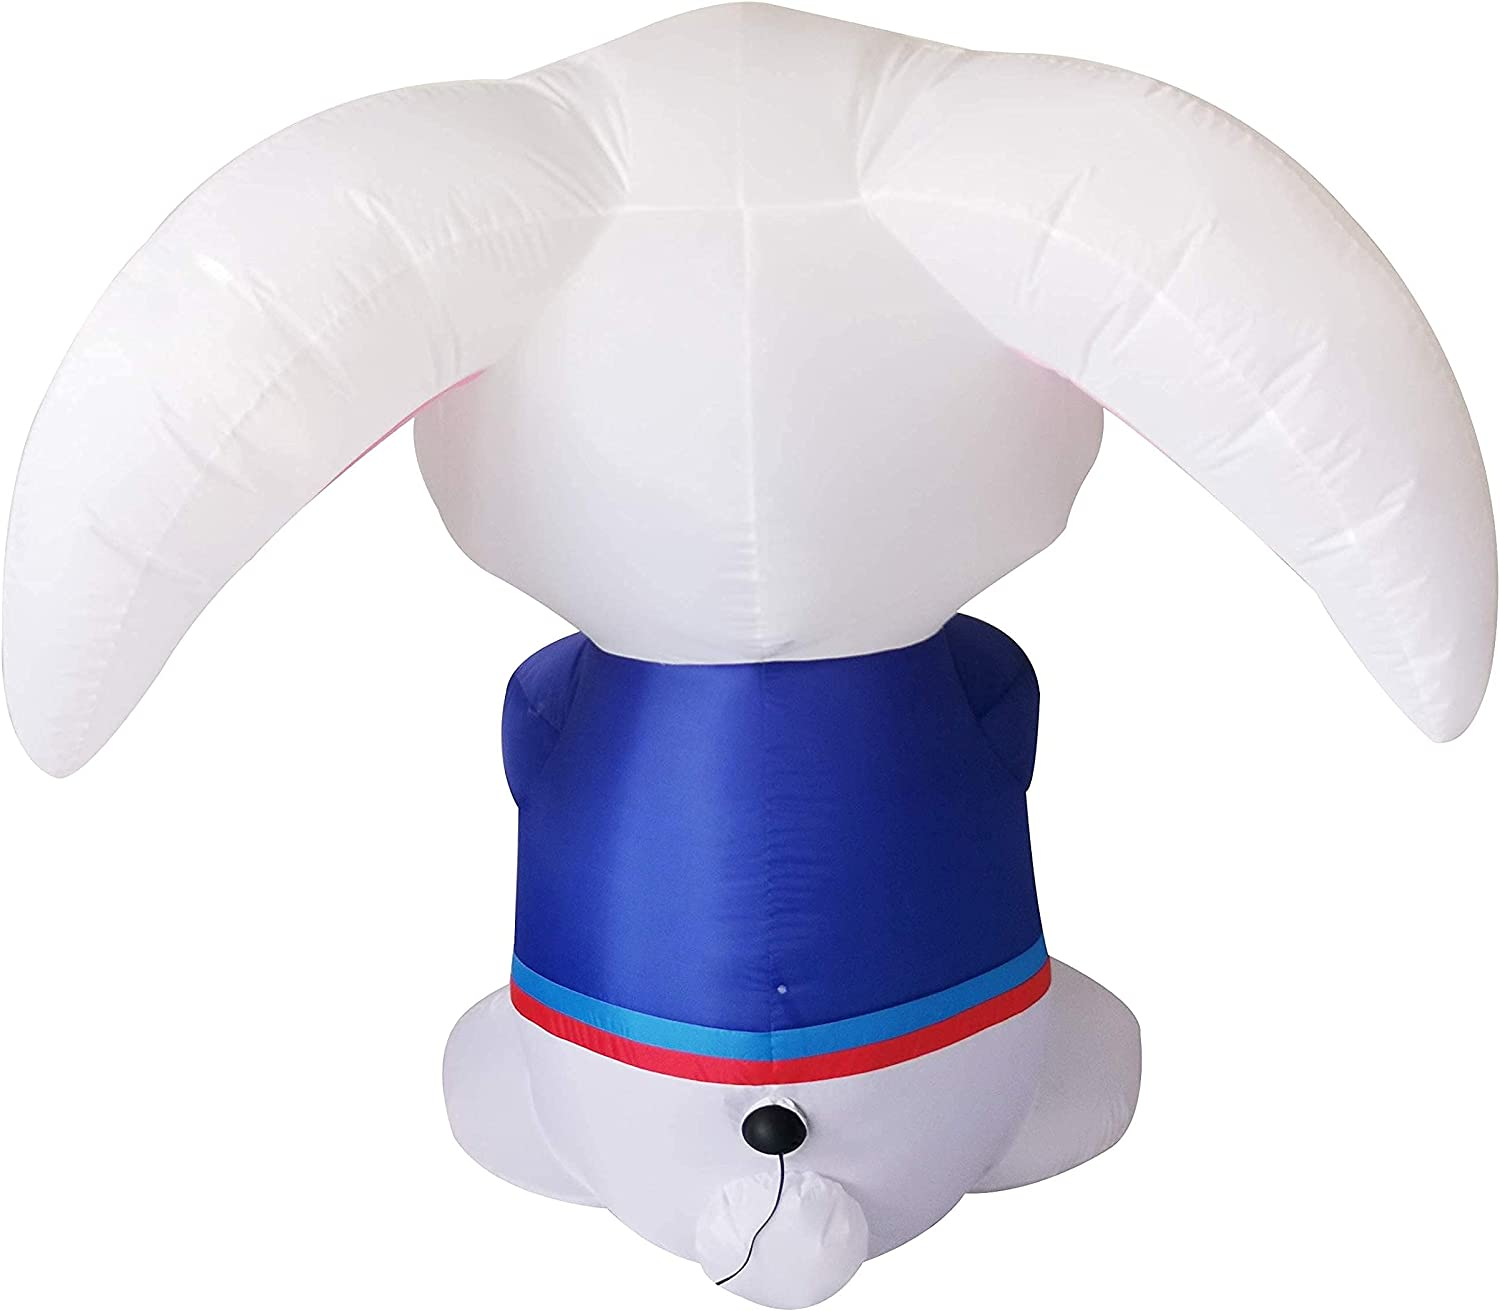 5% OFF COMIN Christmas Inflatable 5 ft Built-in Praying Max 44% OFF with Brig Bunny